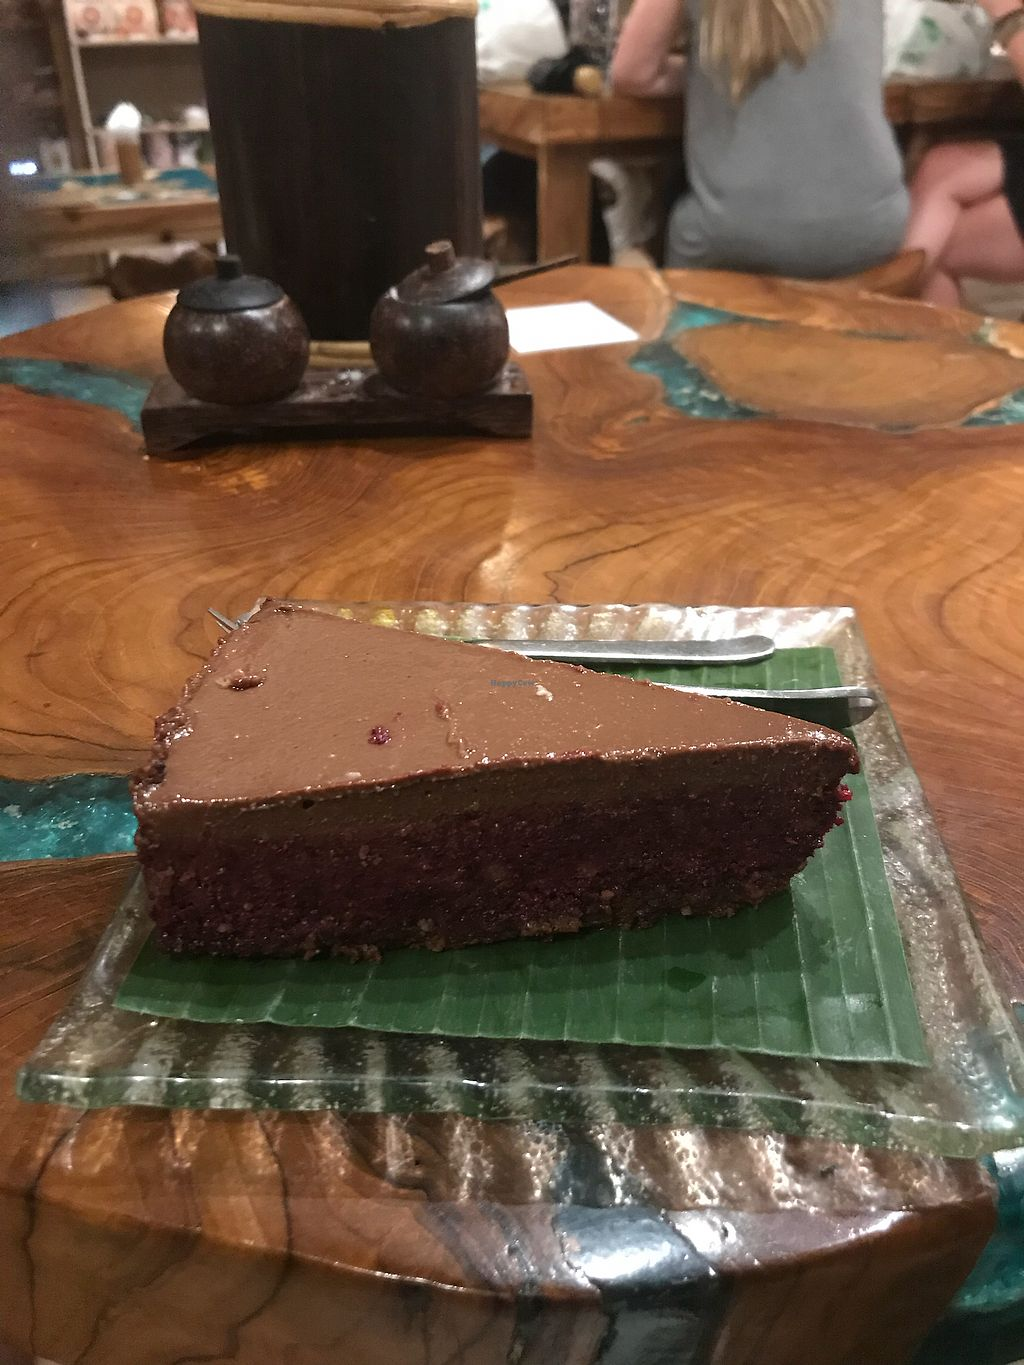 """Photo of Atman Nourish Kafe  by <a href=""""/members/profile/LolaNachtigall"""">LolaNachtigall</a> <br/>Beetroot, Cacao, Coconut Cake <br/> March 17, 2018  - <a href='/contact/abuse/image/91940/371680'>Report</a>"""